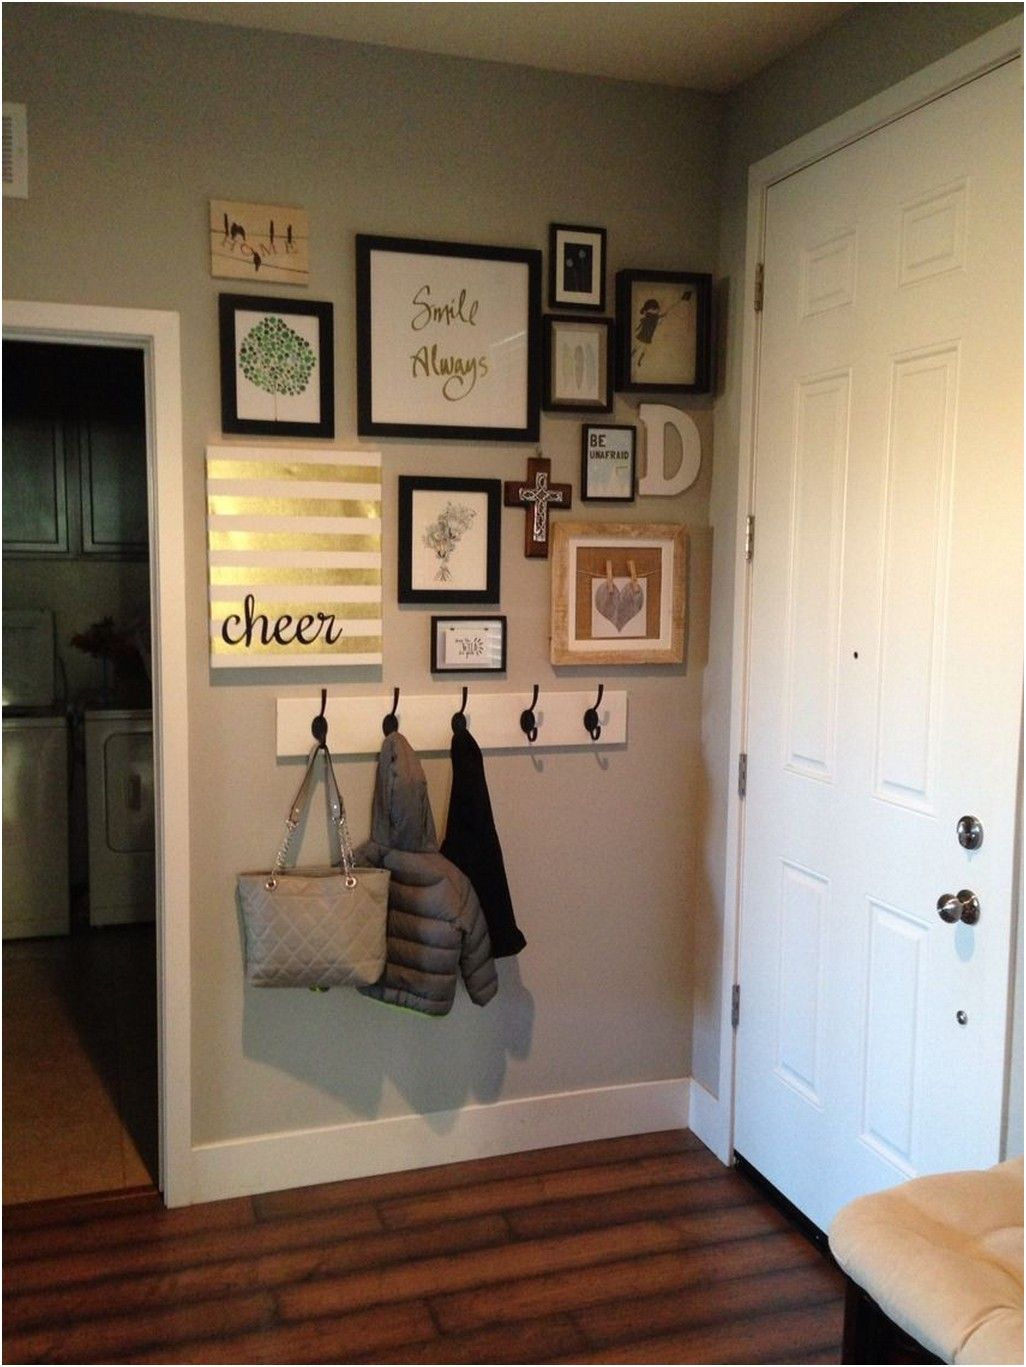 Beautiful Entryway Ideas on a budget! Whether it's a grand house or a tiny nook by the door, your home's entry is the first thing visitors see when they step inside your house and the sight that welcomes you home every day. So make it a good one! Here are some affordable contemporary entryway ideas.  #entrywaydecor #entrywayideas #smallentryway #designerentryway #modernentryway #contemporaryentryway #entryway